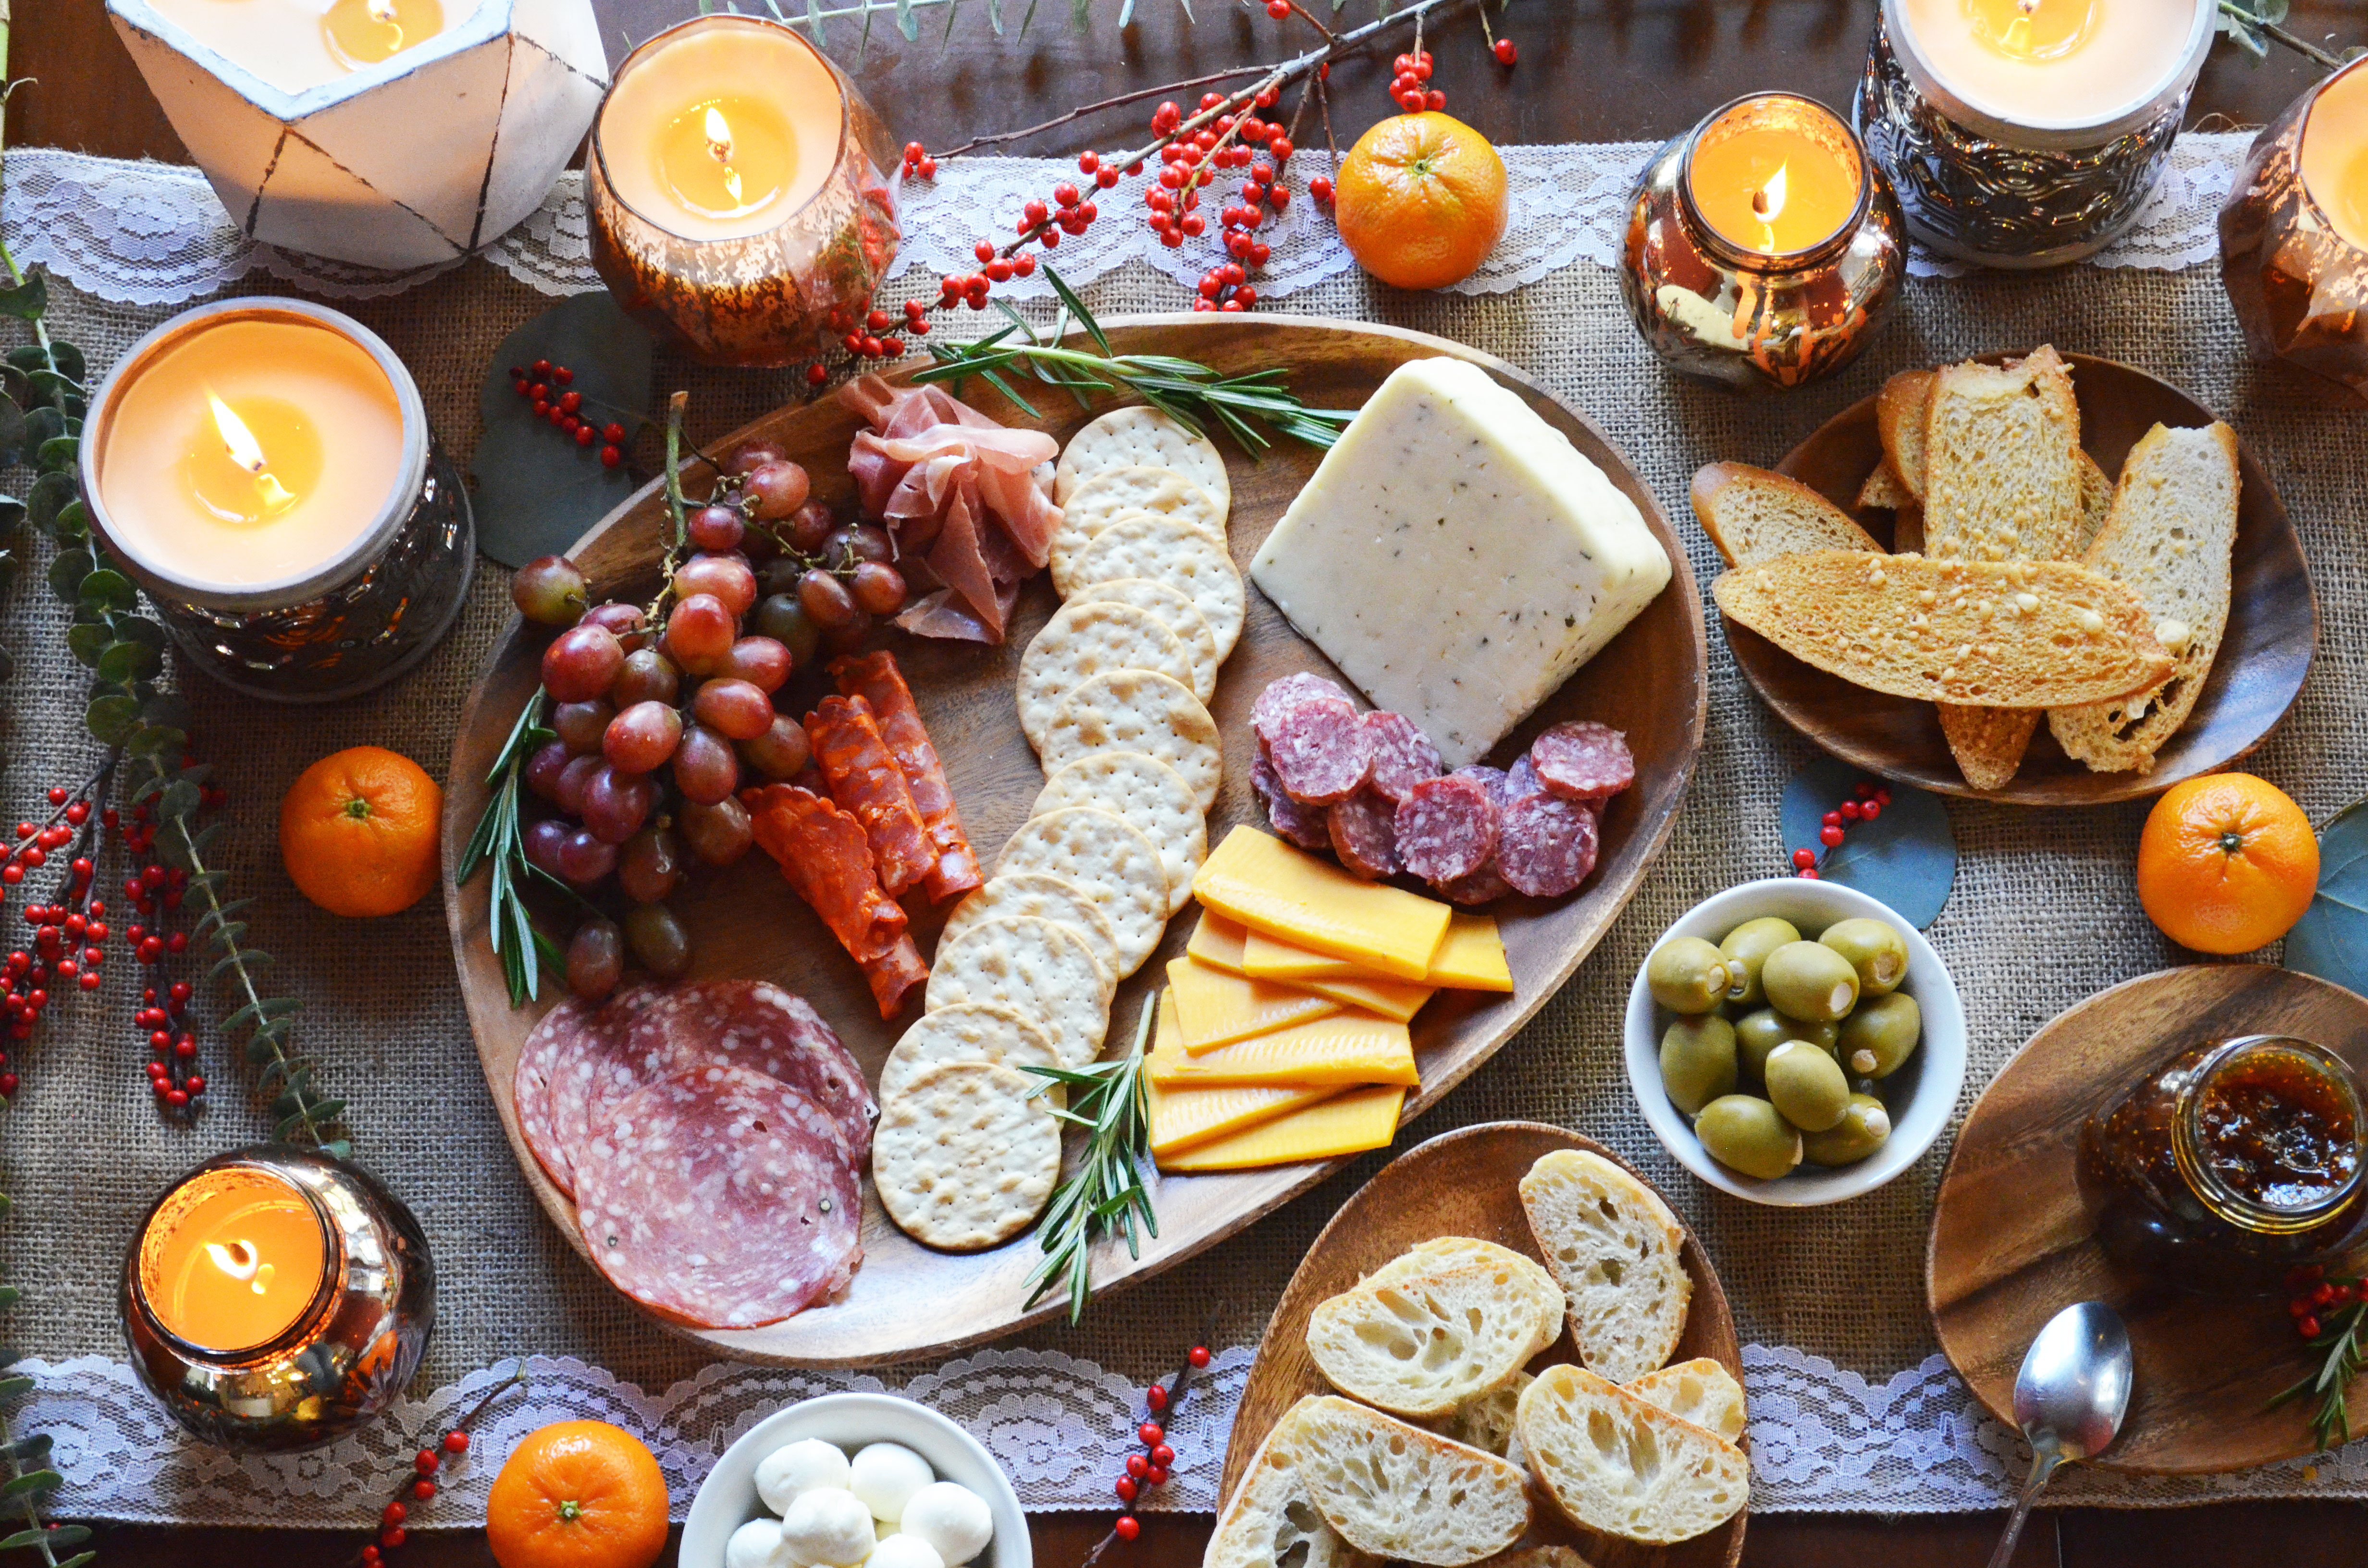 appetizer spread with meat and cheese - diy charcuterie | www.bylaurenm.com